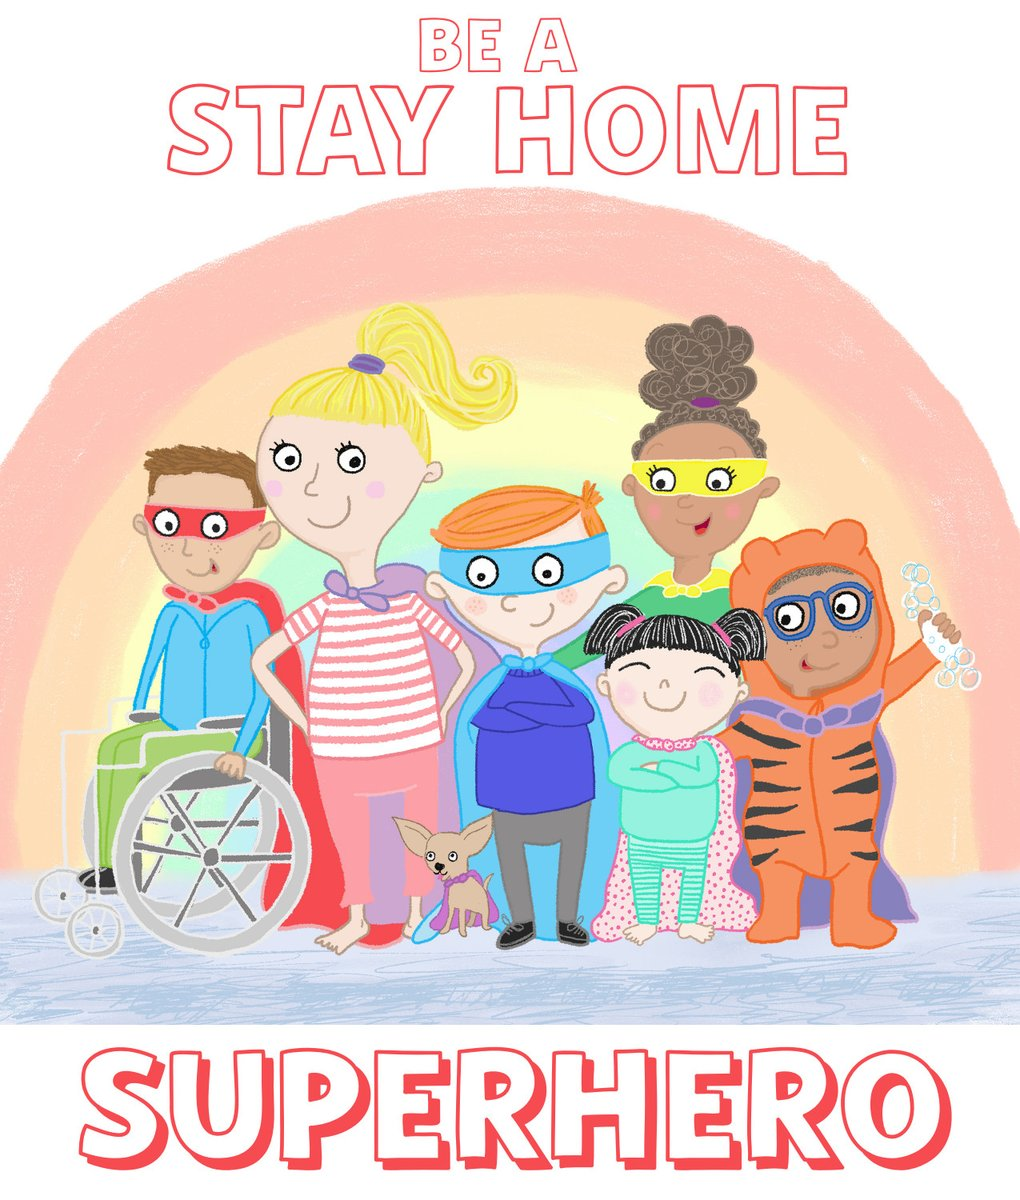 StayHomeSuperheroes hashtag on Twitter